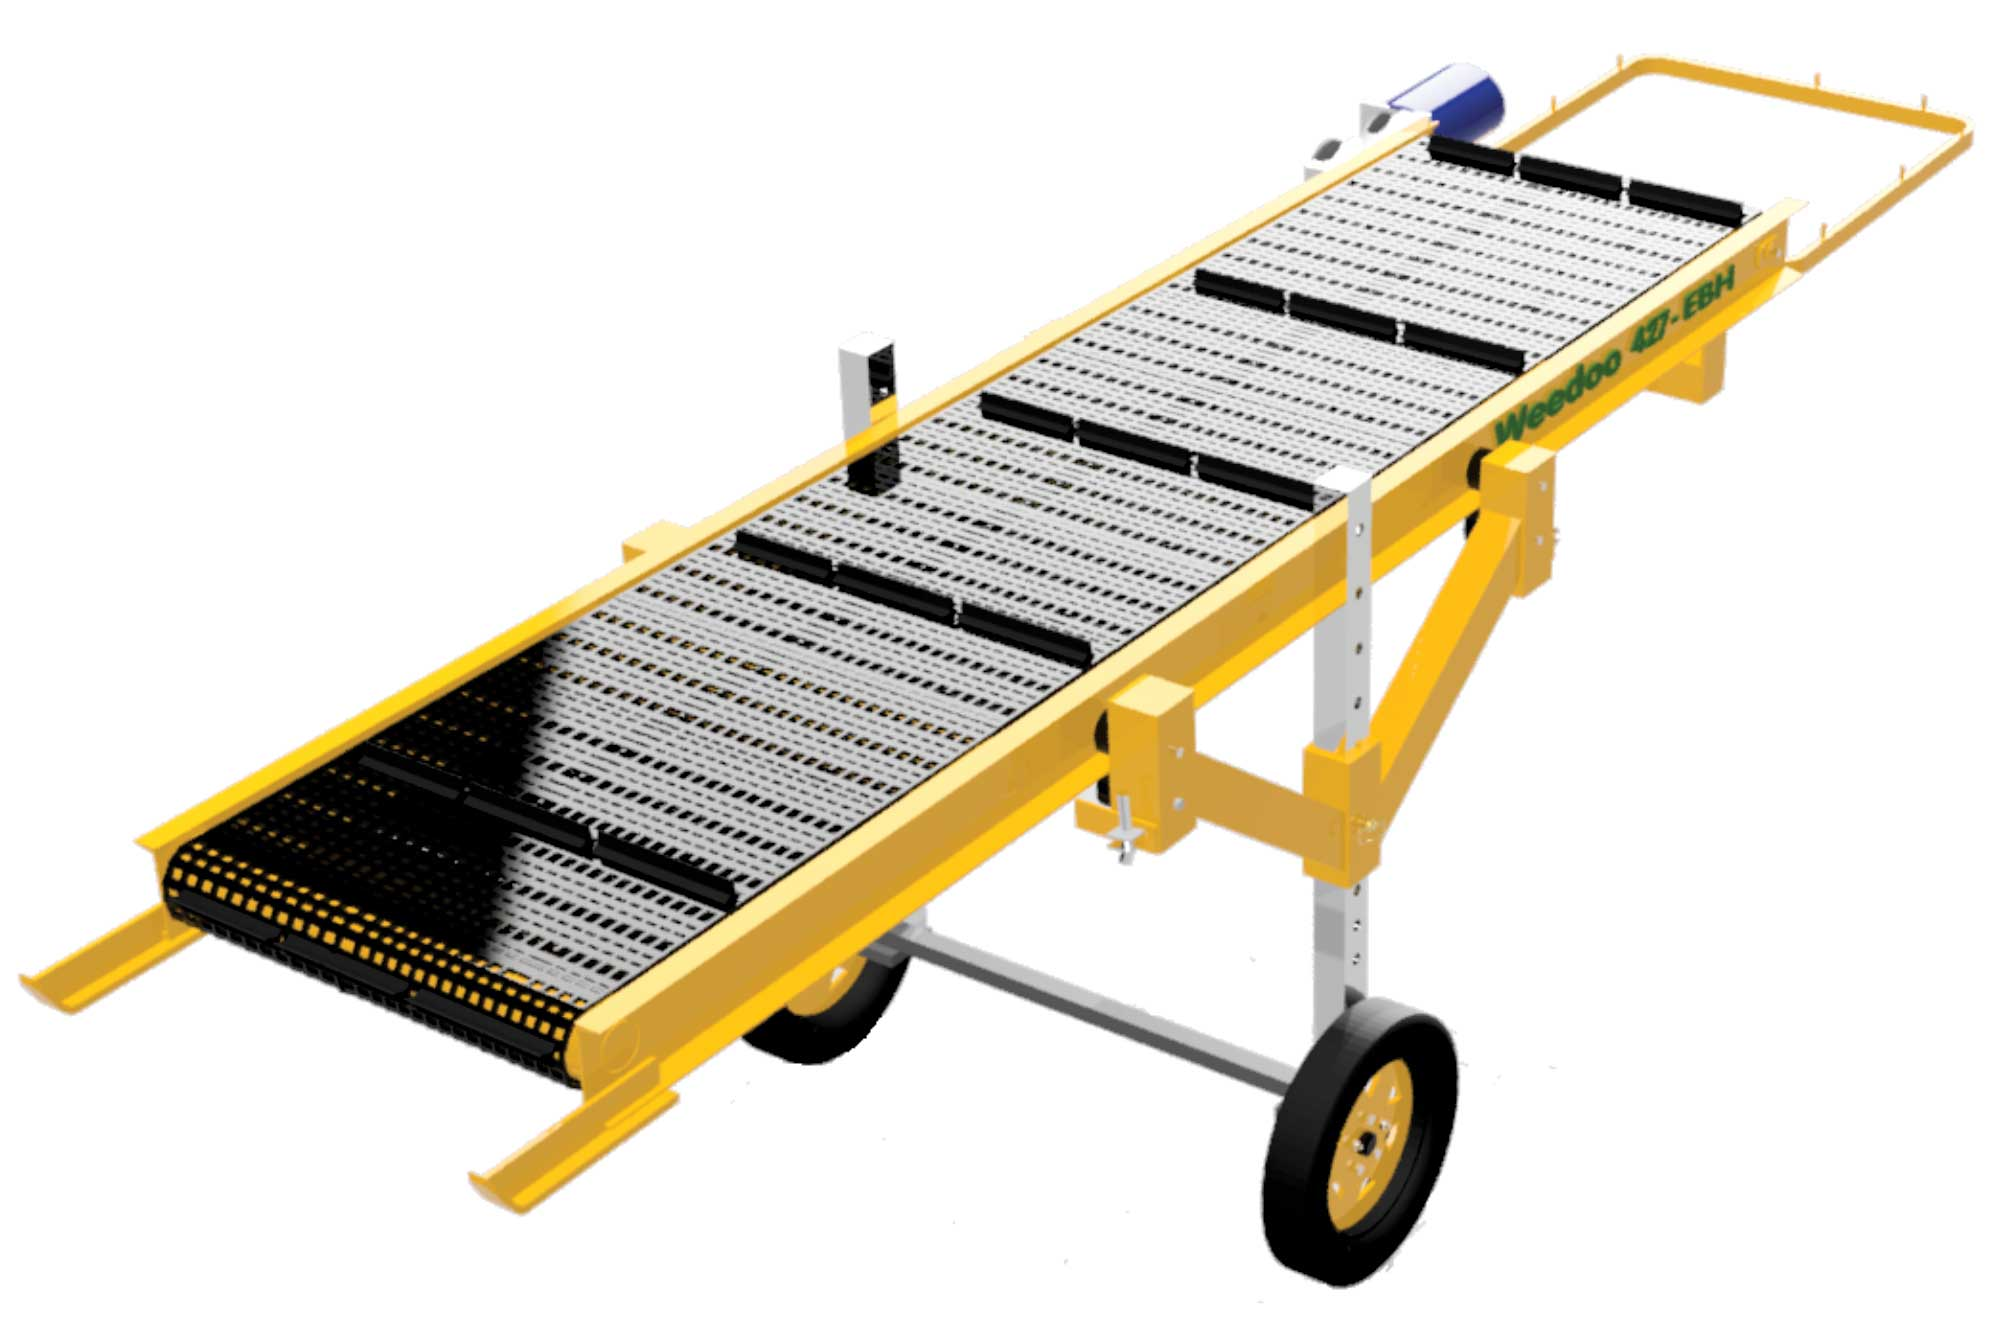 Weedoo 427 EBH - battery powered conveyor